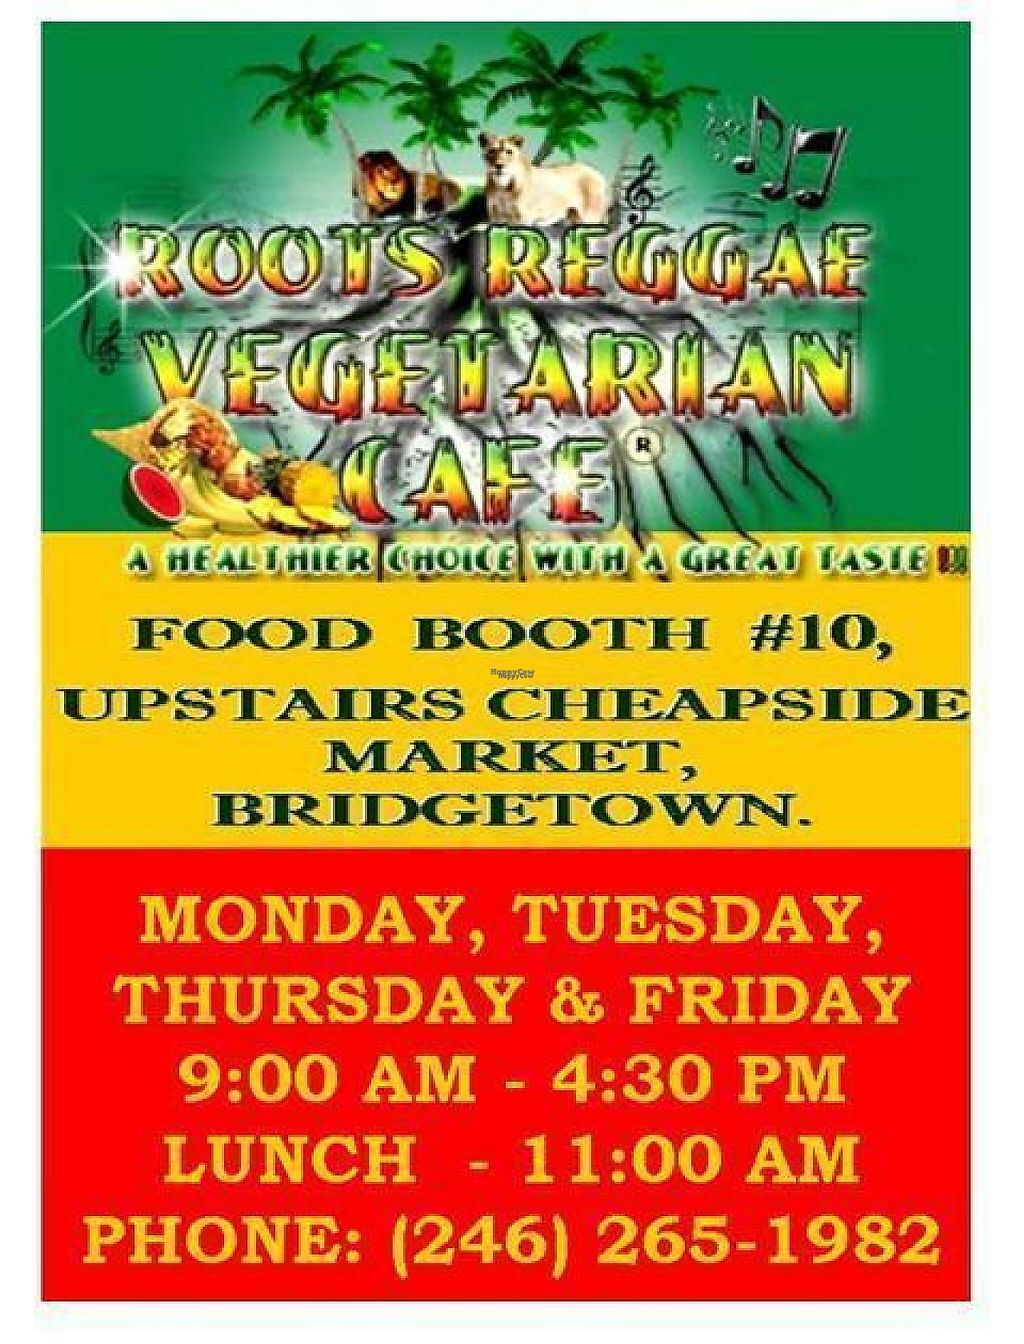 """Photo of Roots Reggae Vegetarian Cafe  by <a href=""""/members/profile/RootsReggae"""">RootsReggae</a> <br/>ROOTS REGGAE VEGETARIAN CAFE  <br/> April 19, 2017  - <a href='/contact/abuse/image/68862/249786'>Report</a>"""